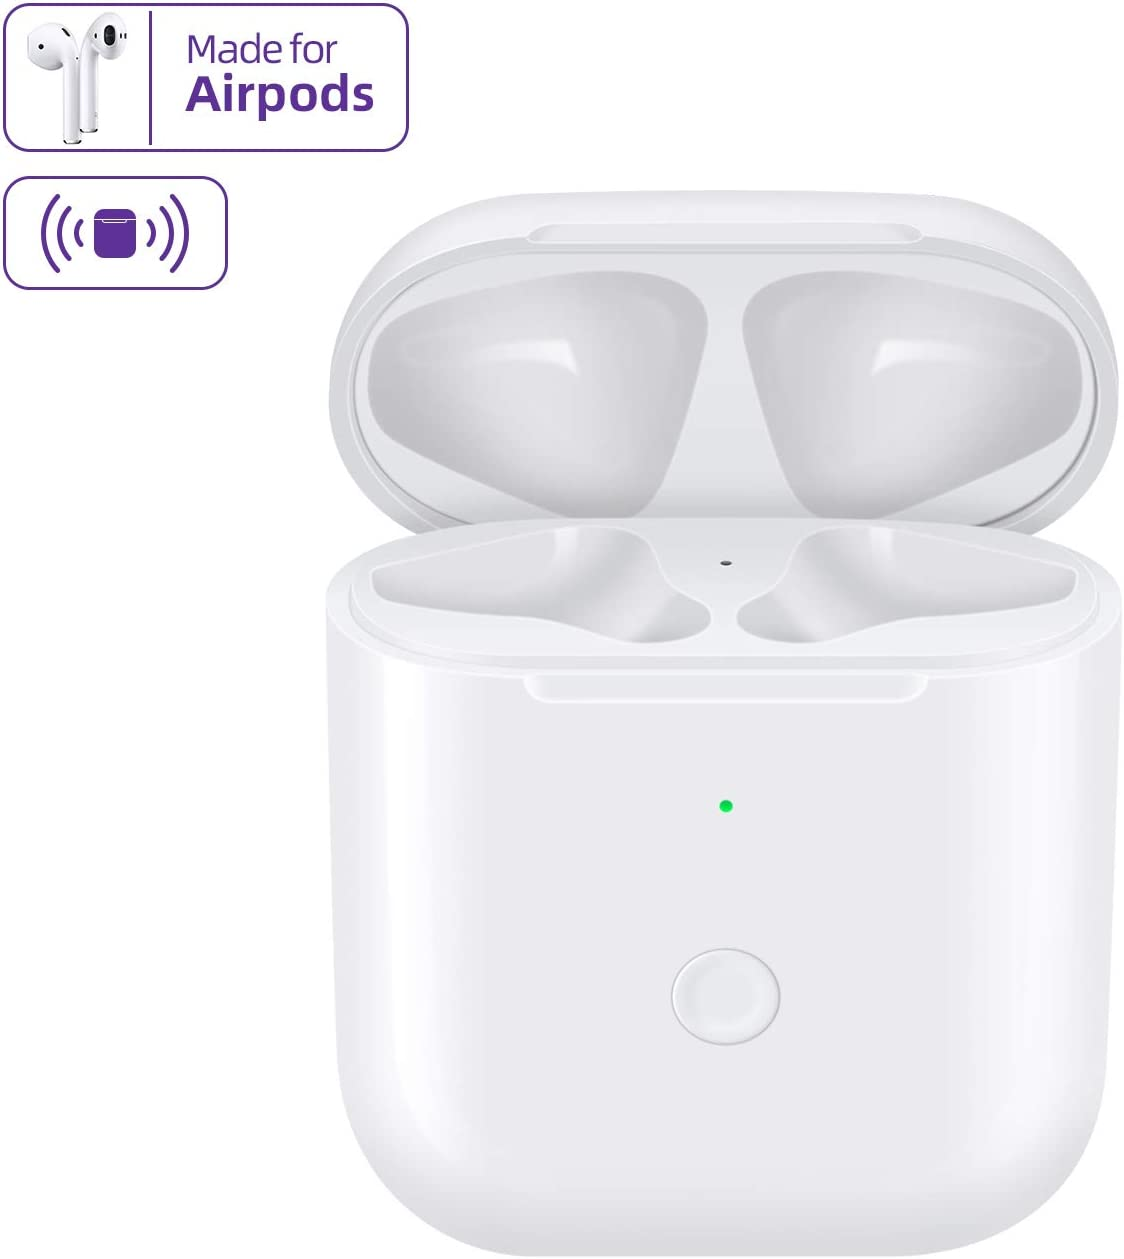 JinStyles Compatible with AirPods 1 2,Wireless Airpods Charging Case with Bluetooth Pairing Sync Button,Air pods Charger Case Replacement,White